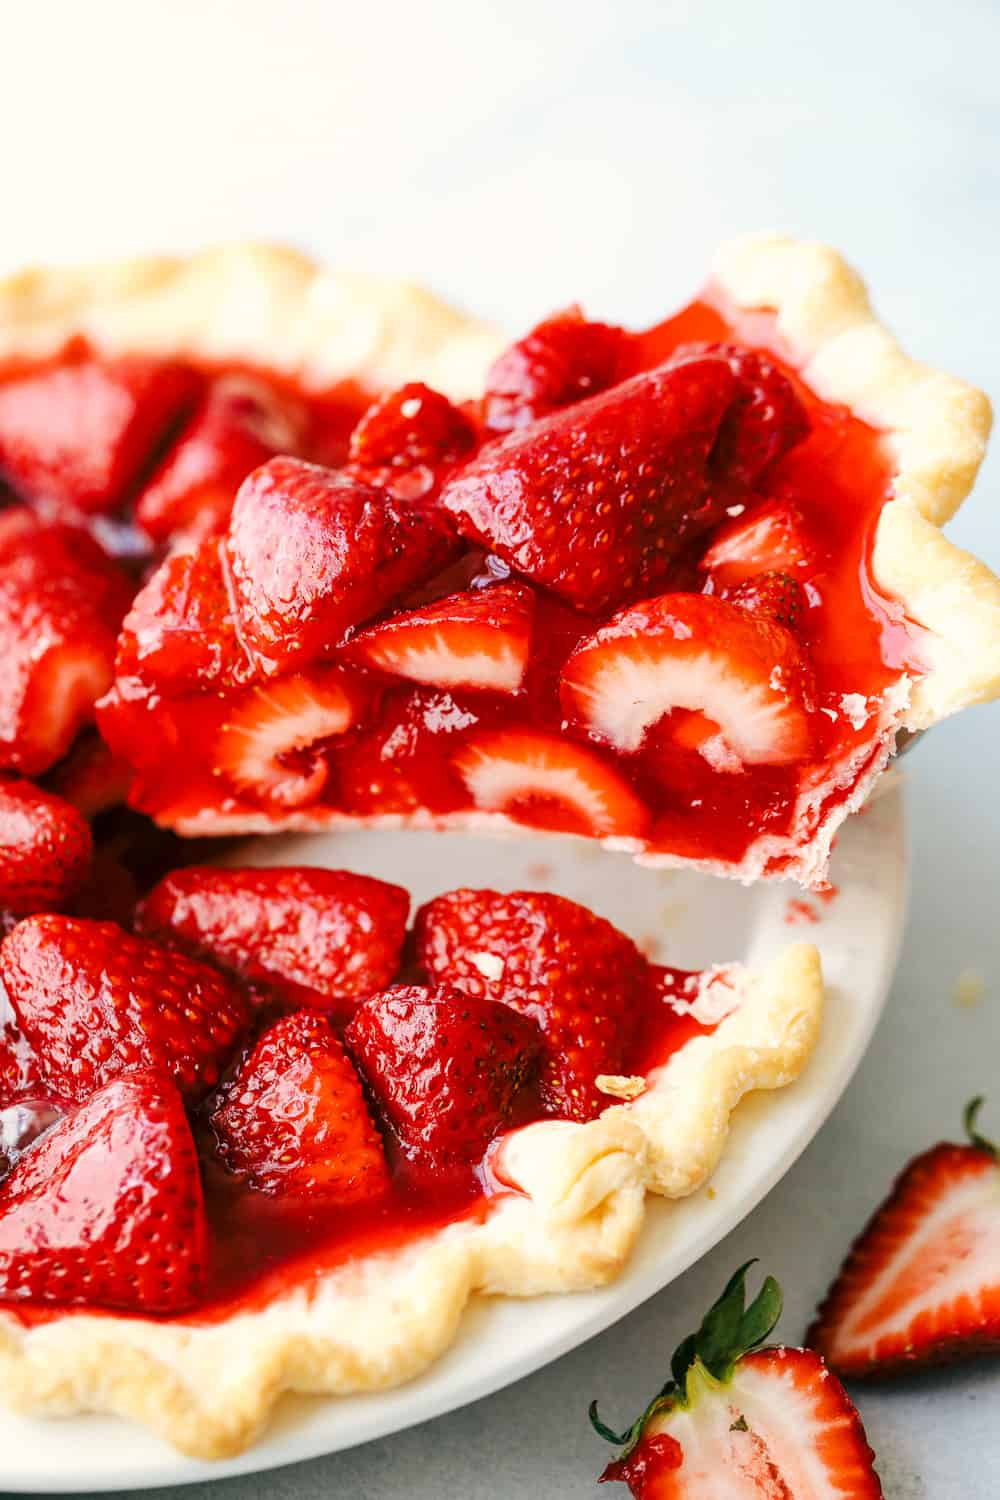 Pulling out a slice of strawberry pie.